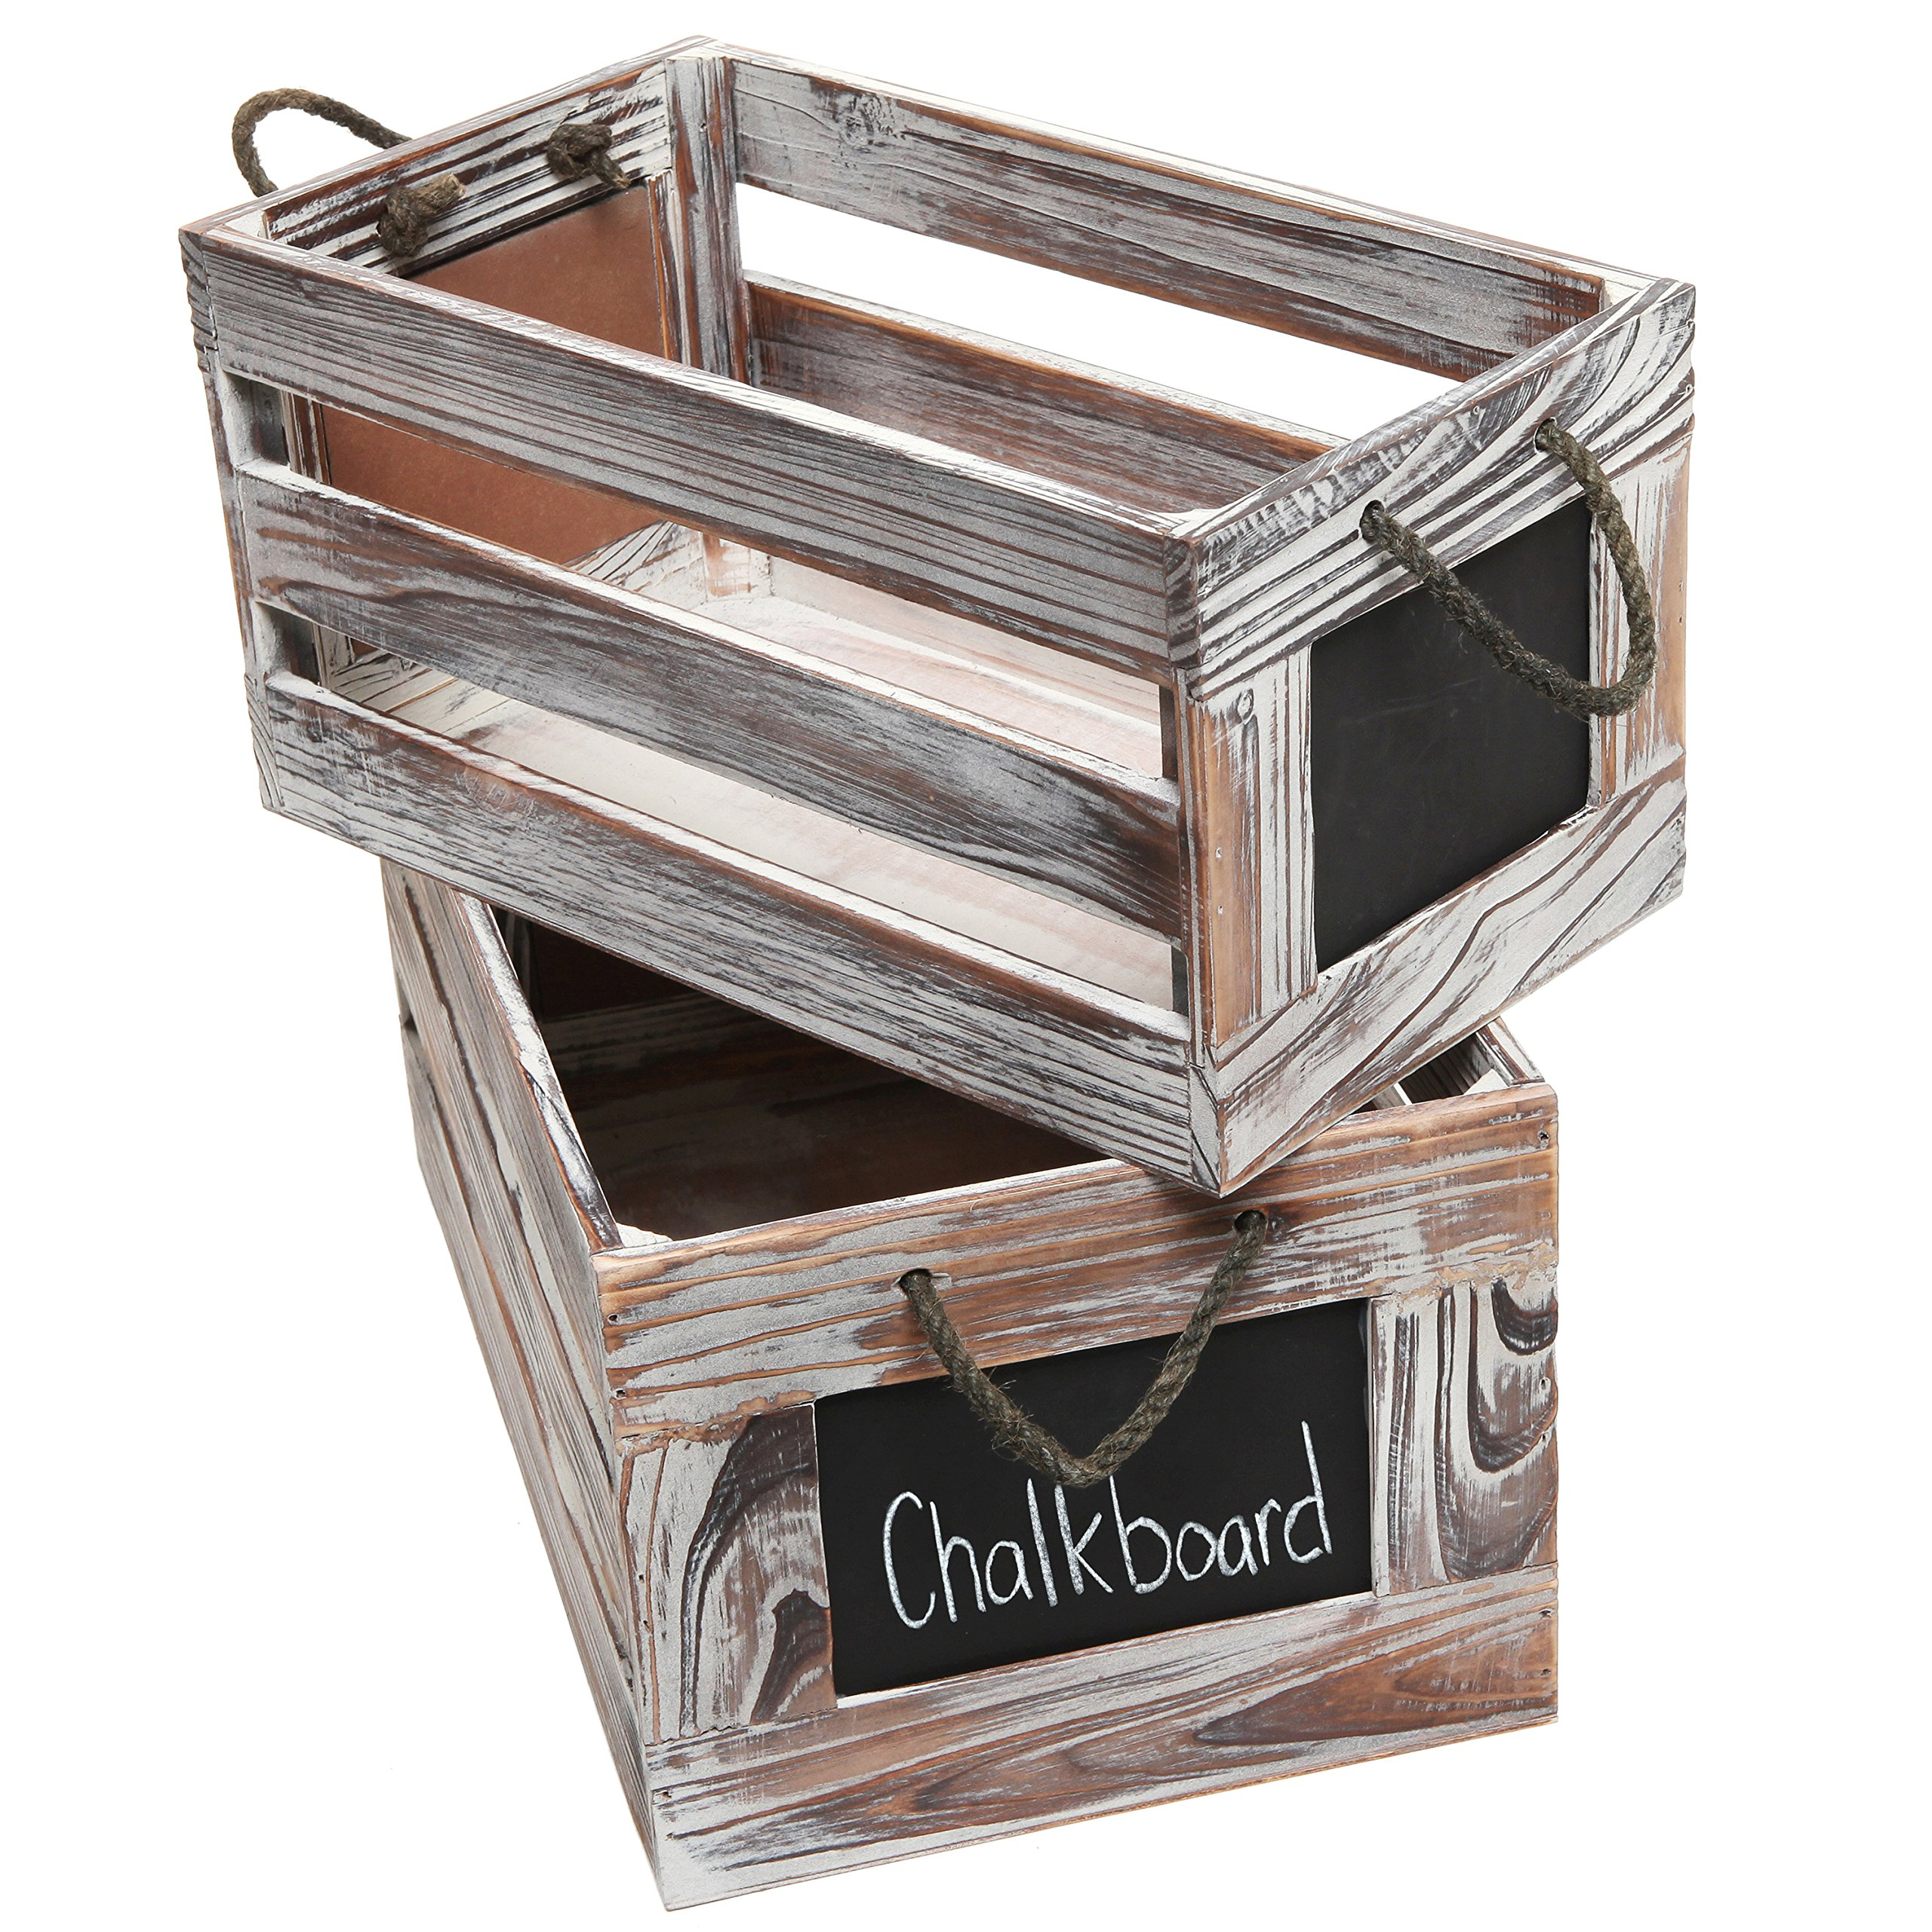 Distressed Torched Wood Finish Nesting Boxes / Rustic Storage Crates with Chalkboard Labels (Set of 2) by MyGift (Image #1)